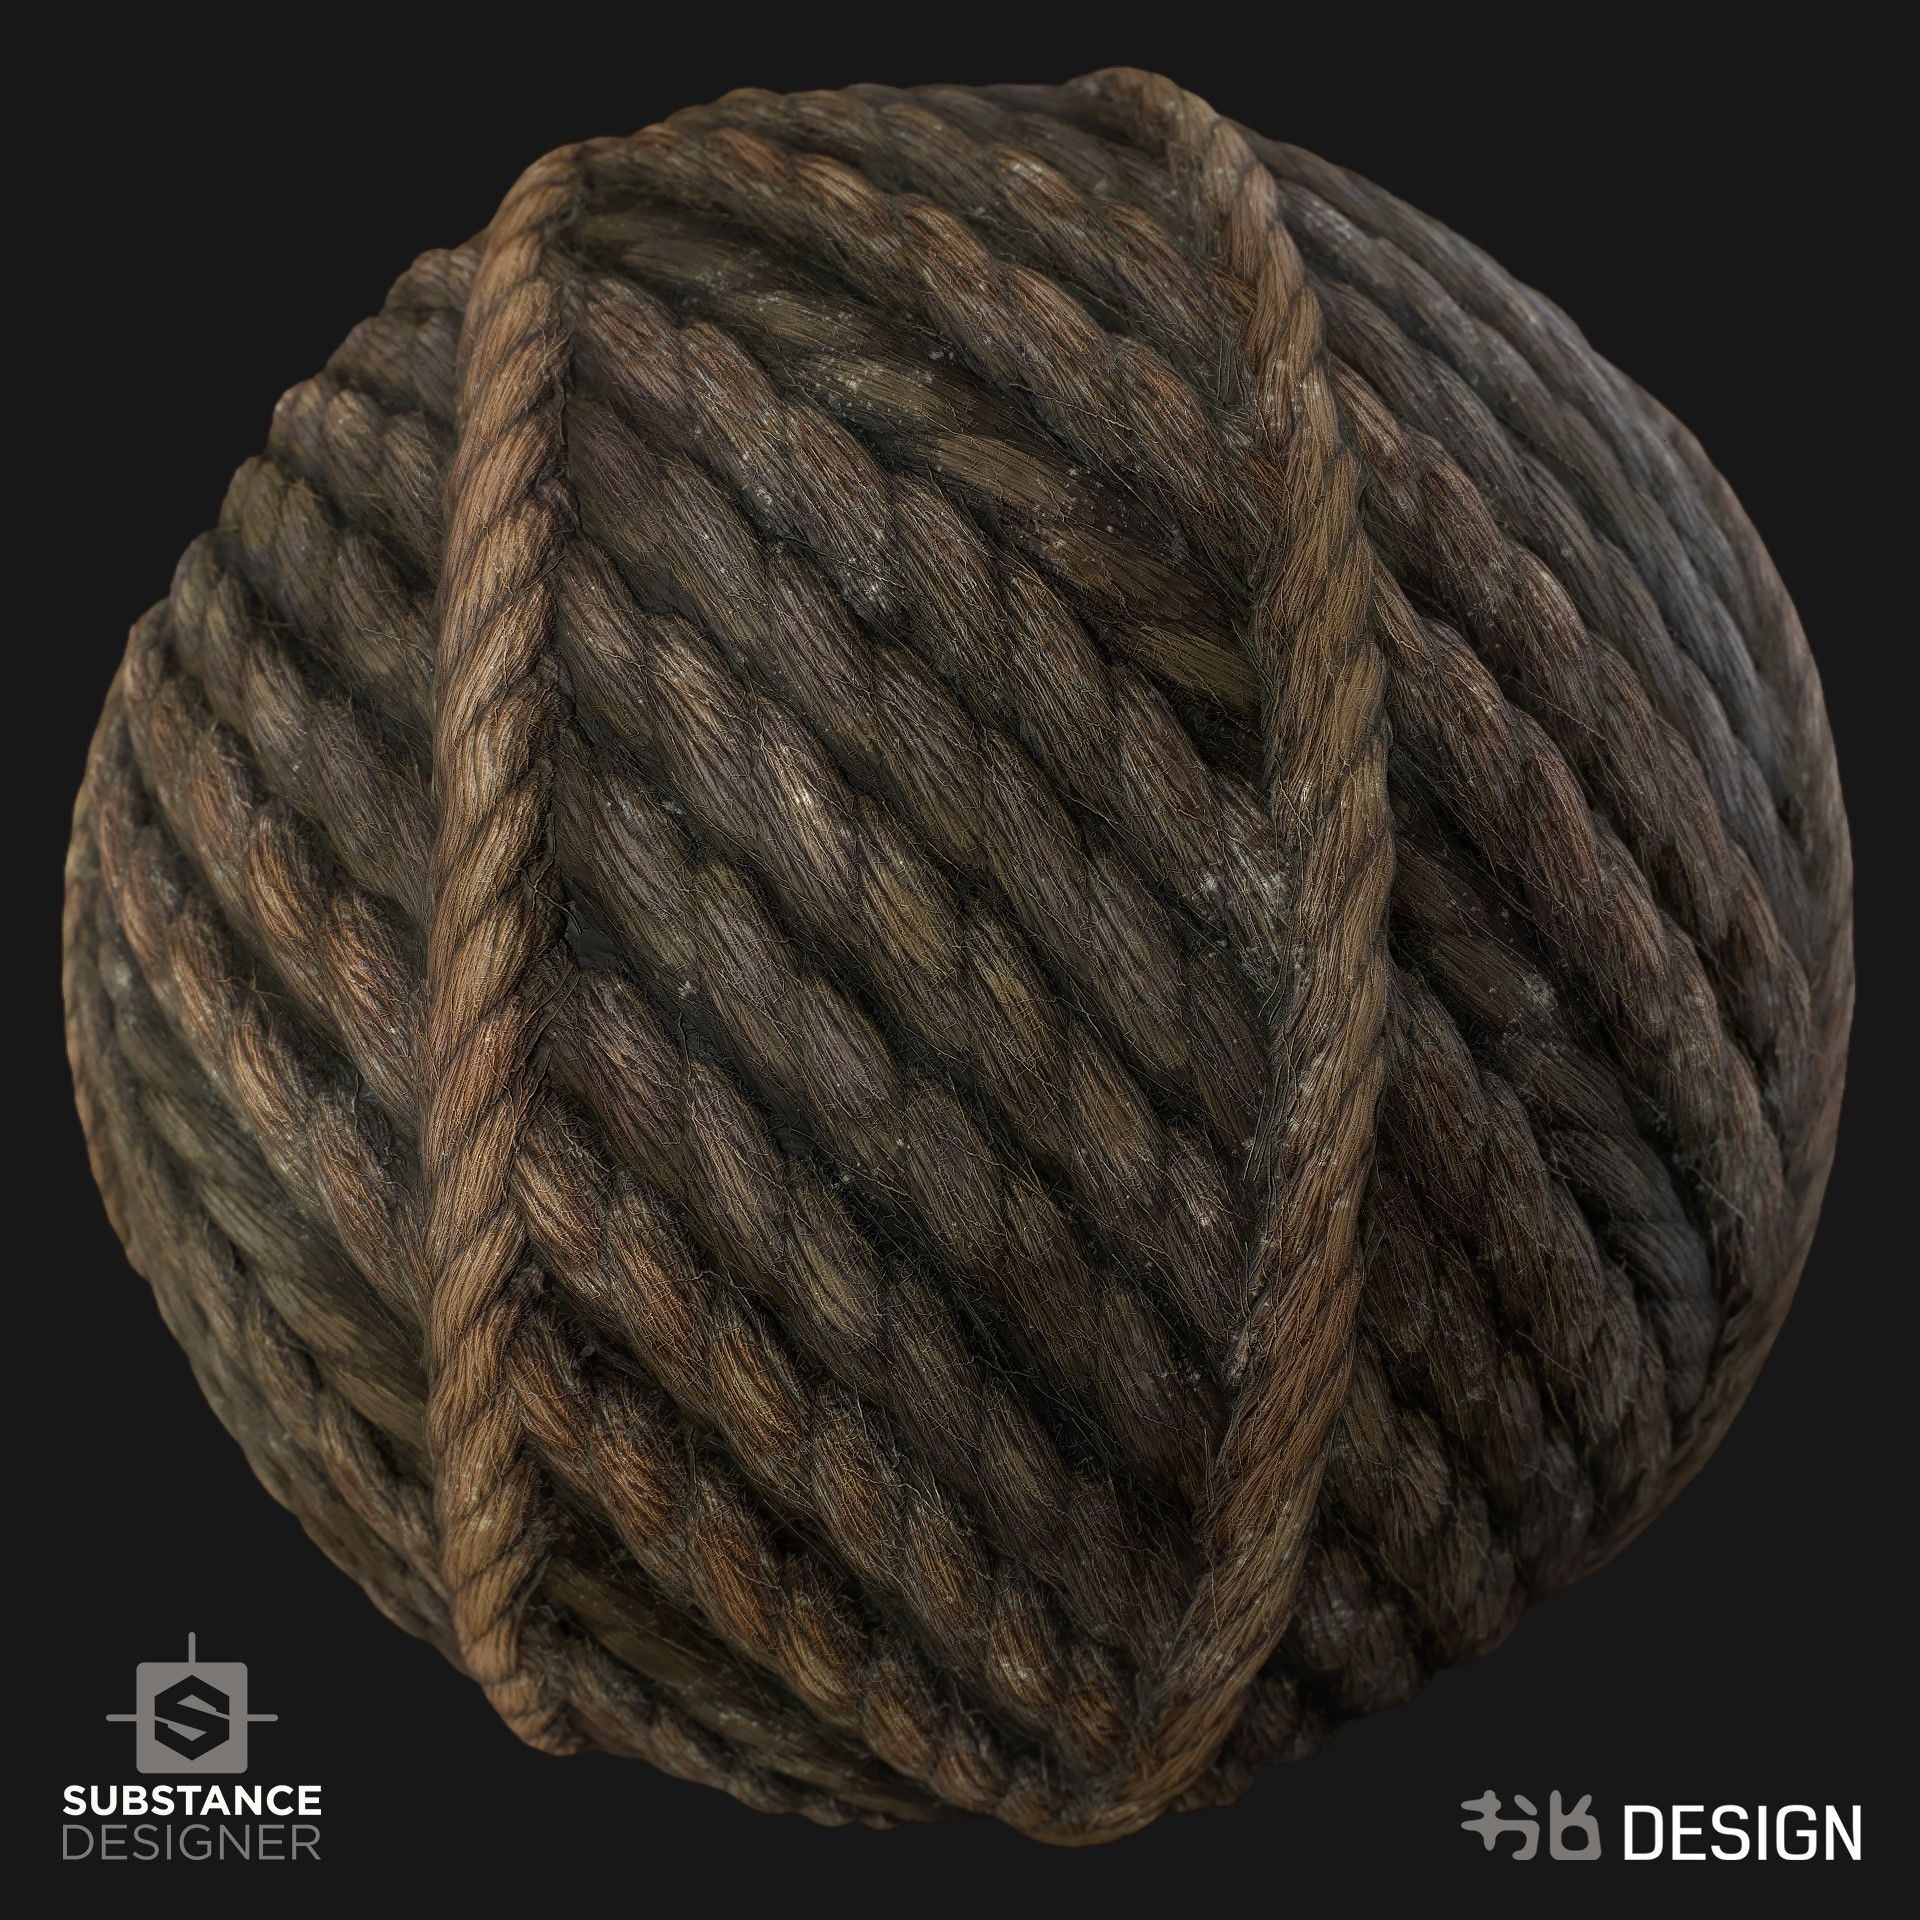 ArtStation - Rope from Jute practice - Substance Designer